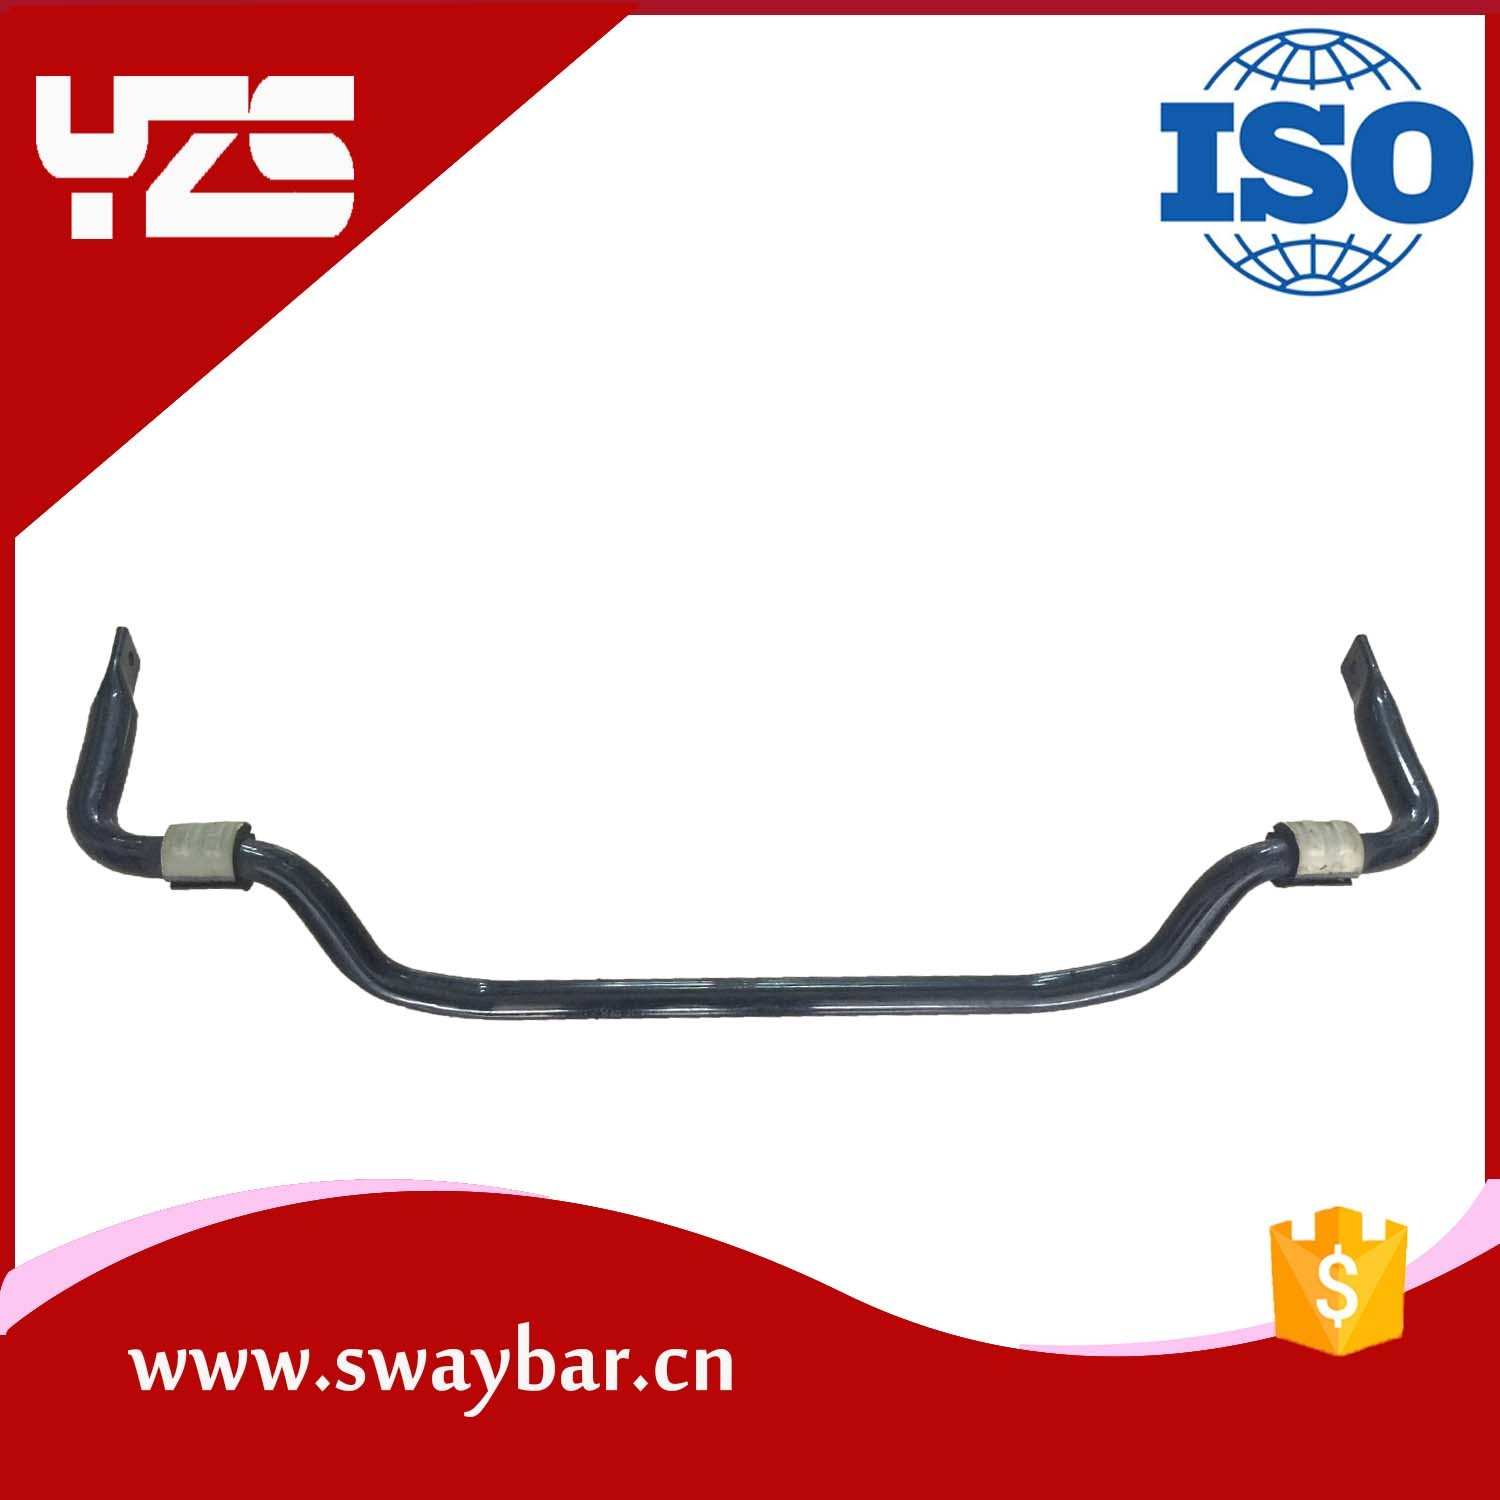 What are the symptoms of a bad sway bar?